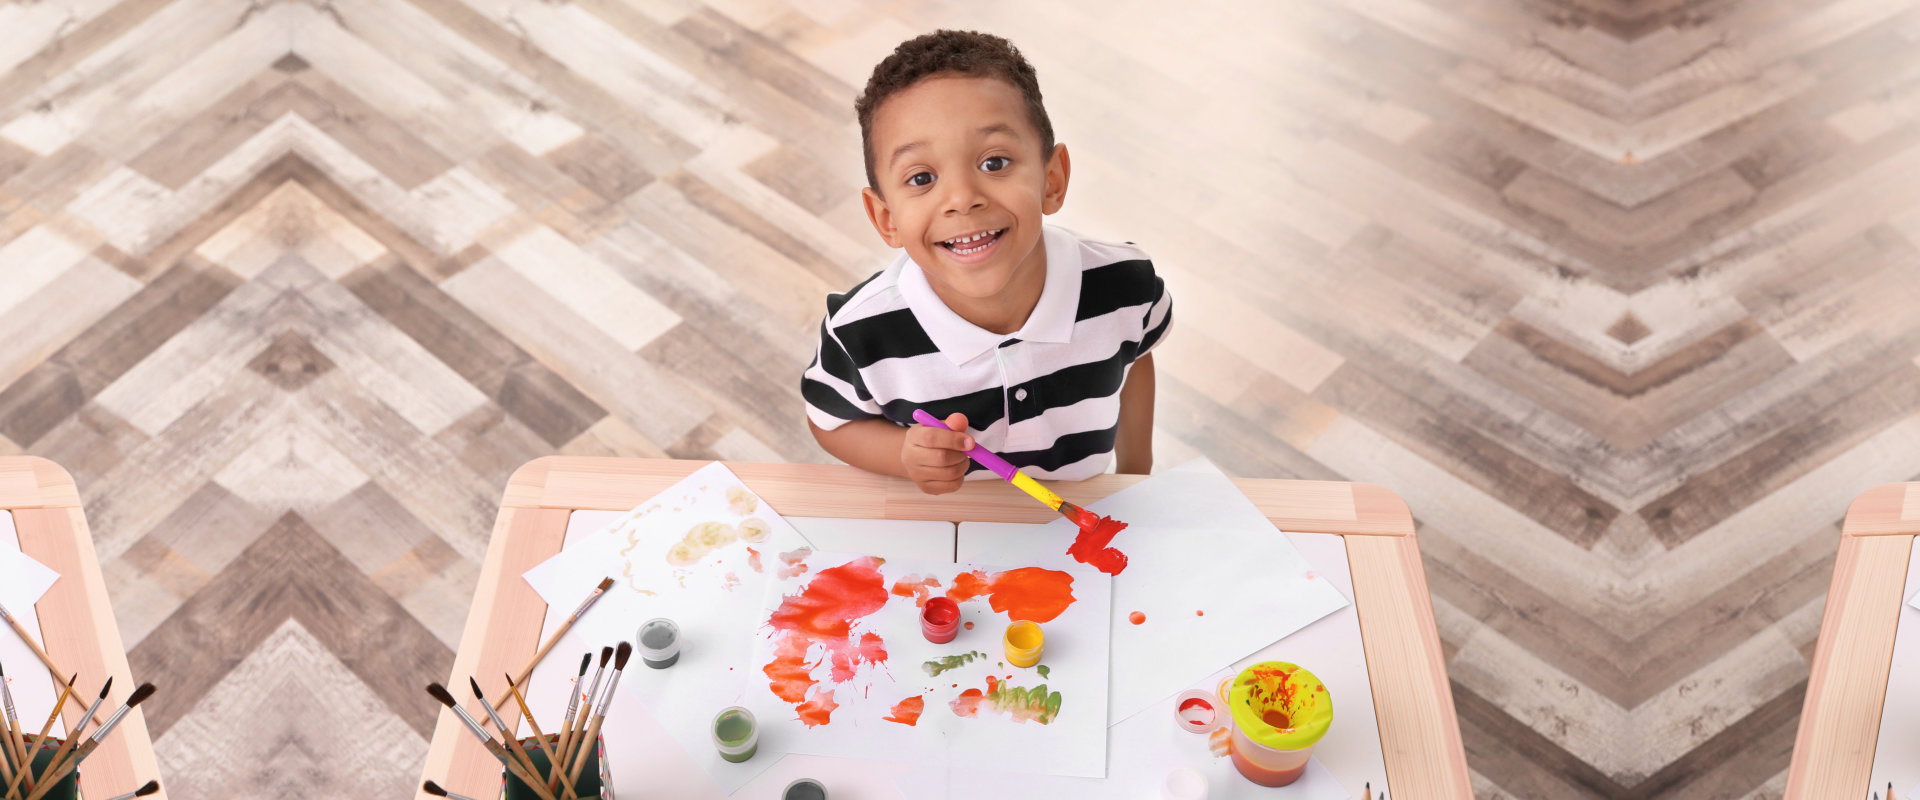 Little African-American boy painting at table indoors